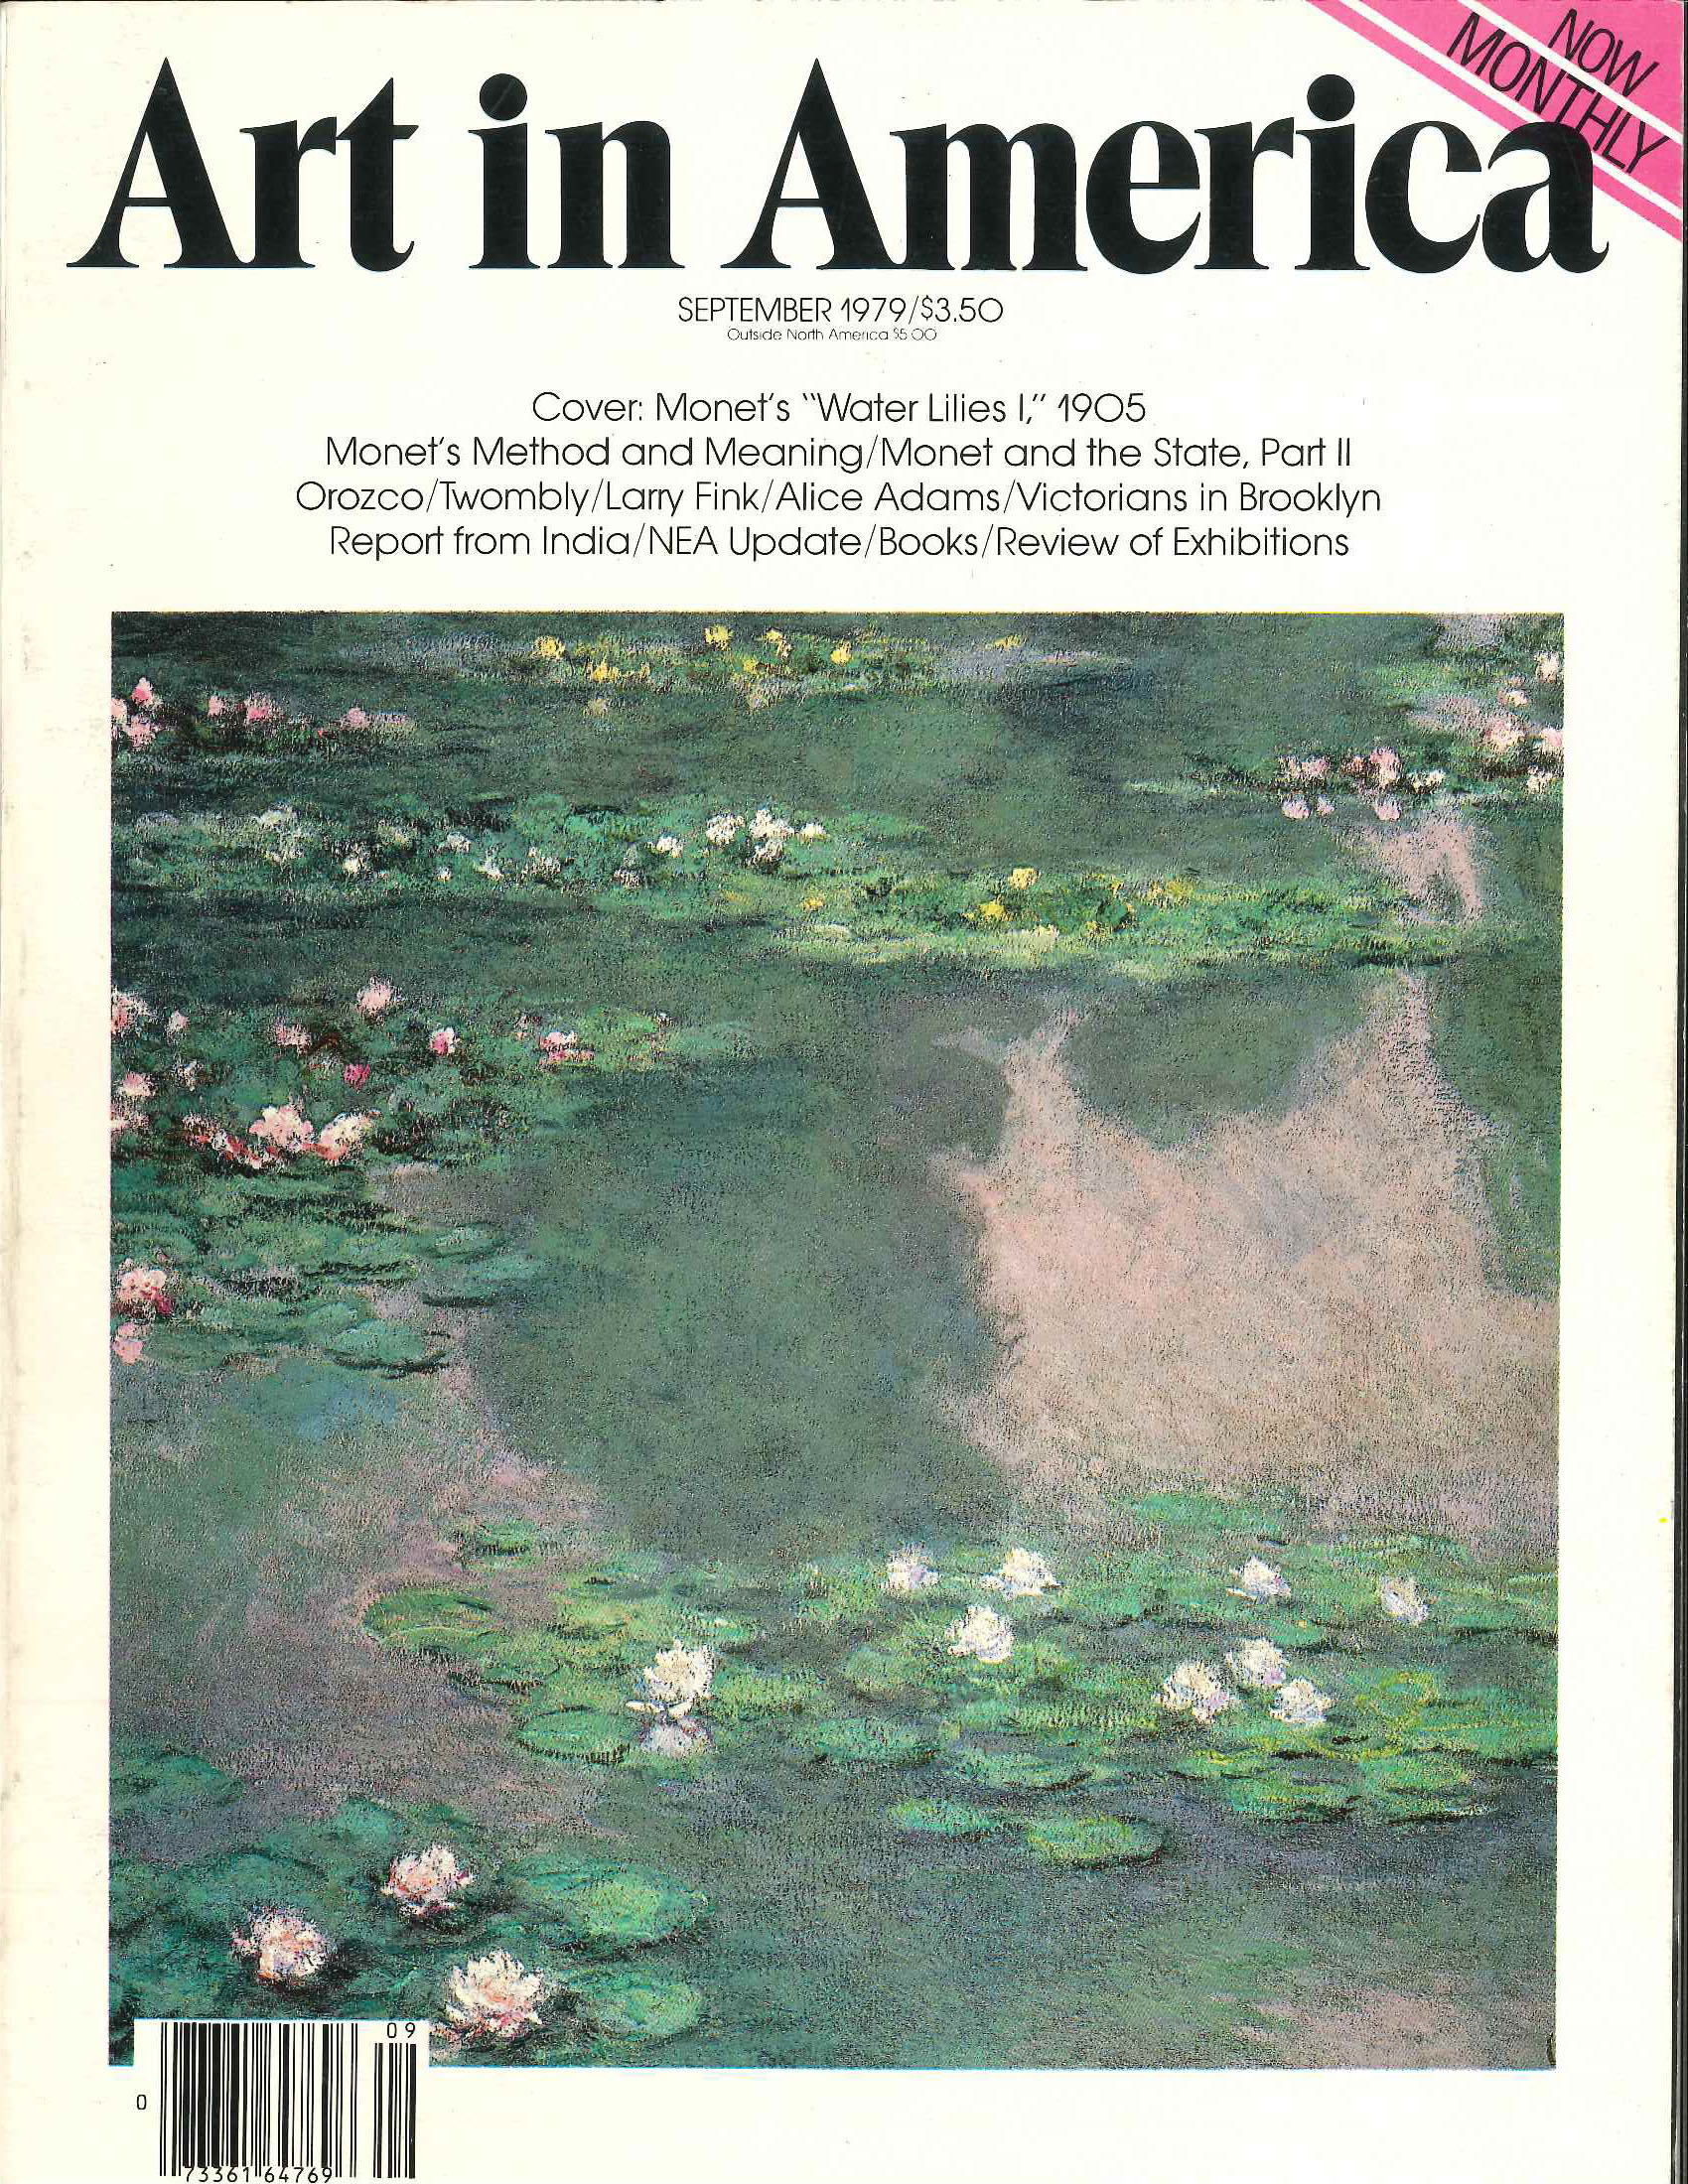 Journal Cover - Title in black lettering above an impressionist painting of water lilies on a lake against a white background.